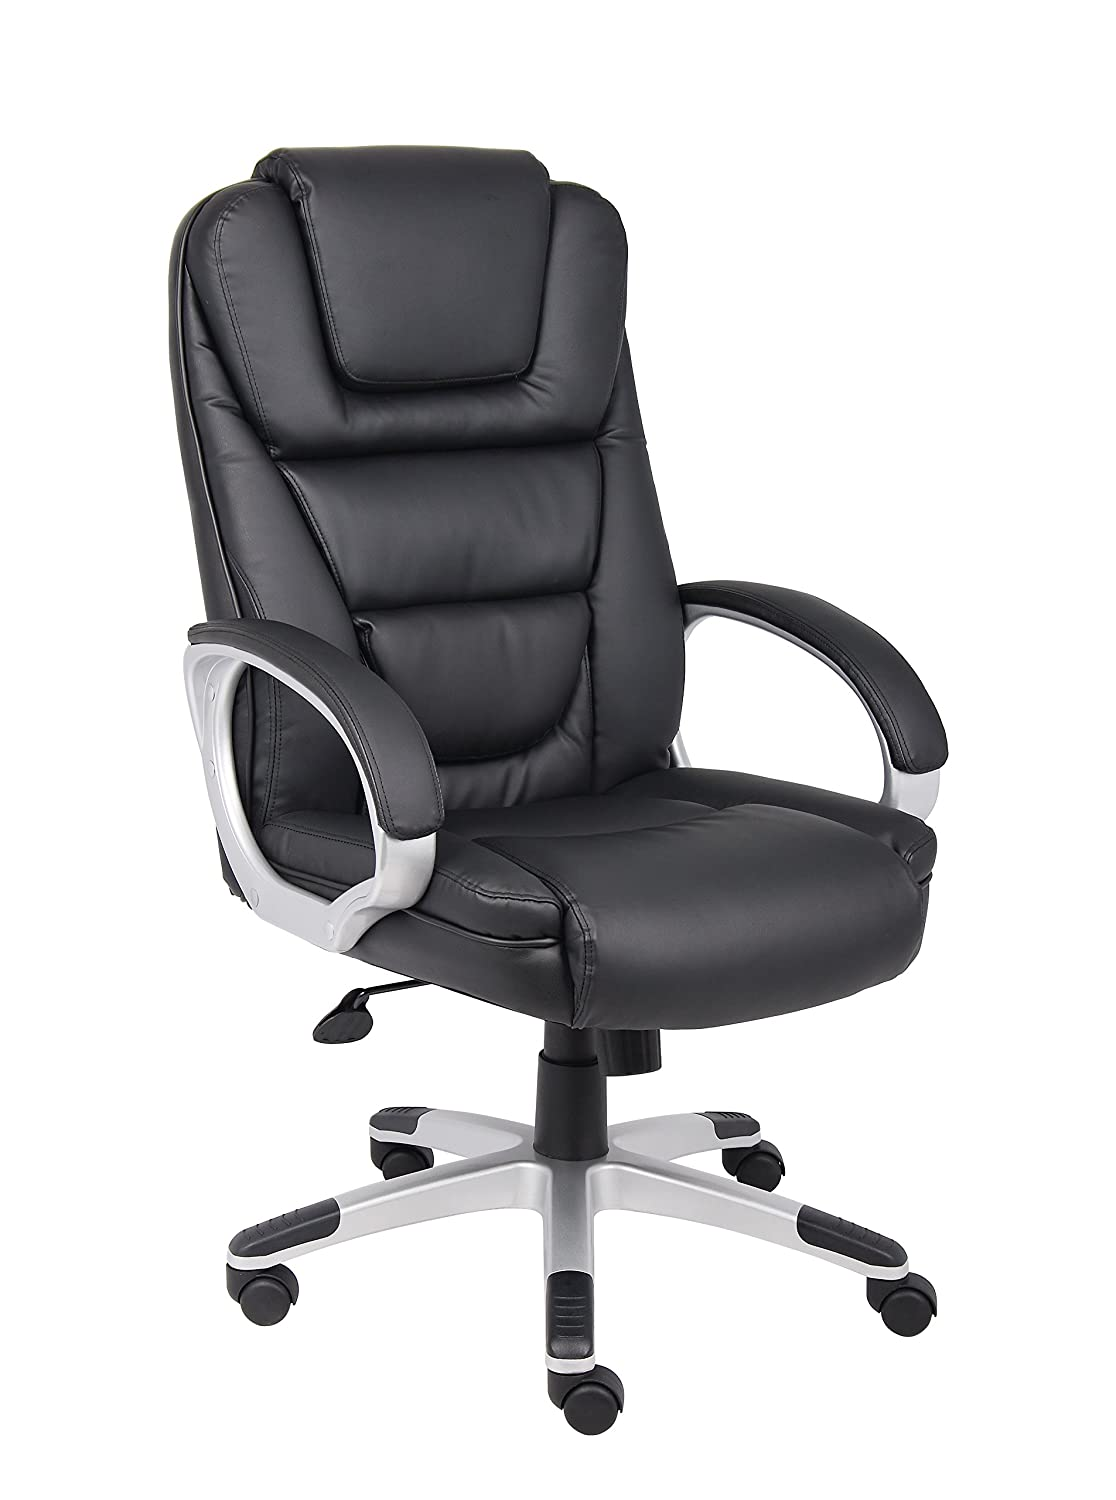 best office chairs for lower back pain detailed review. Black Bedroom Furniture Sets. Home Design Ideas